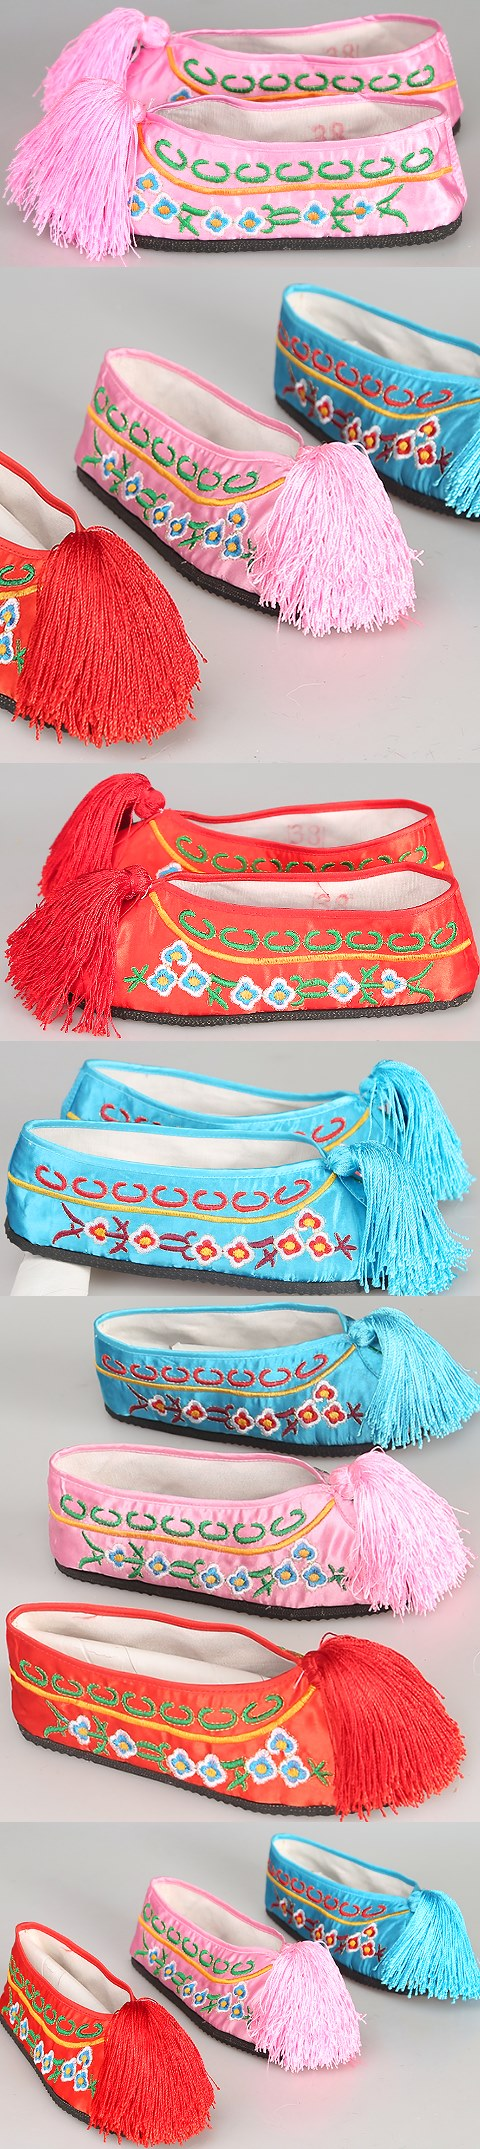 Tassel Embroidery Shoes (Multicolor)